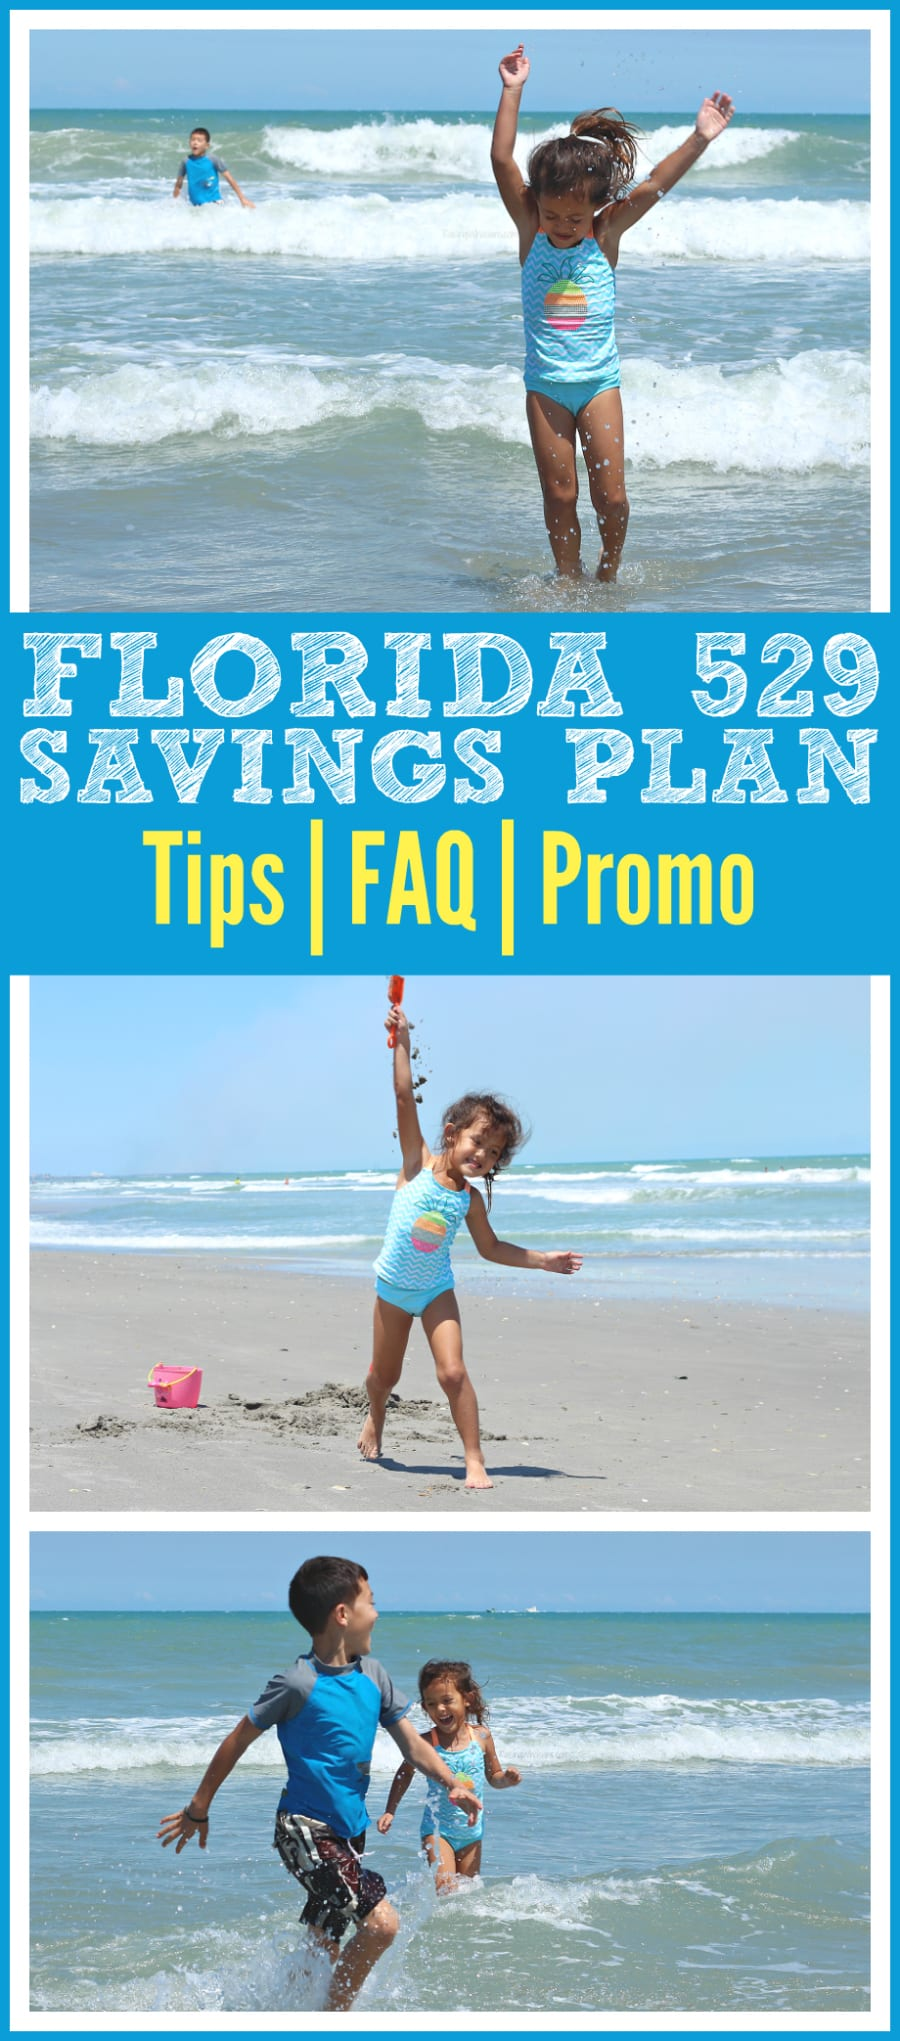 Florida 529 savings plan FAQ